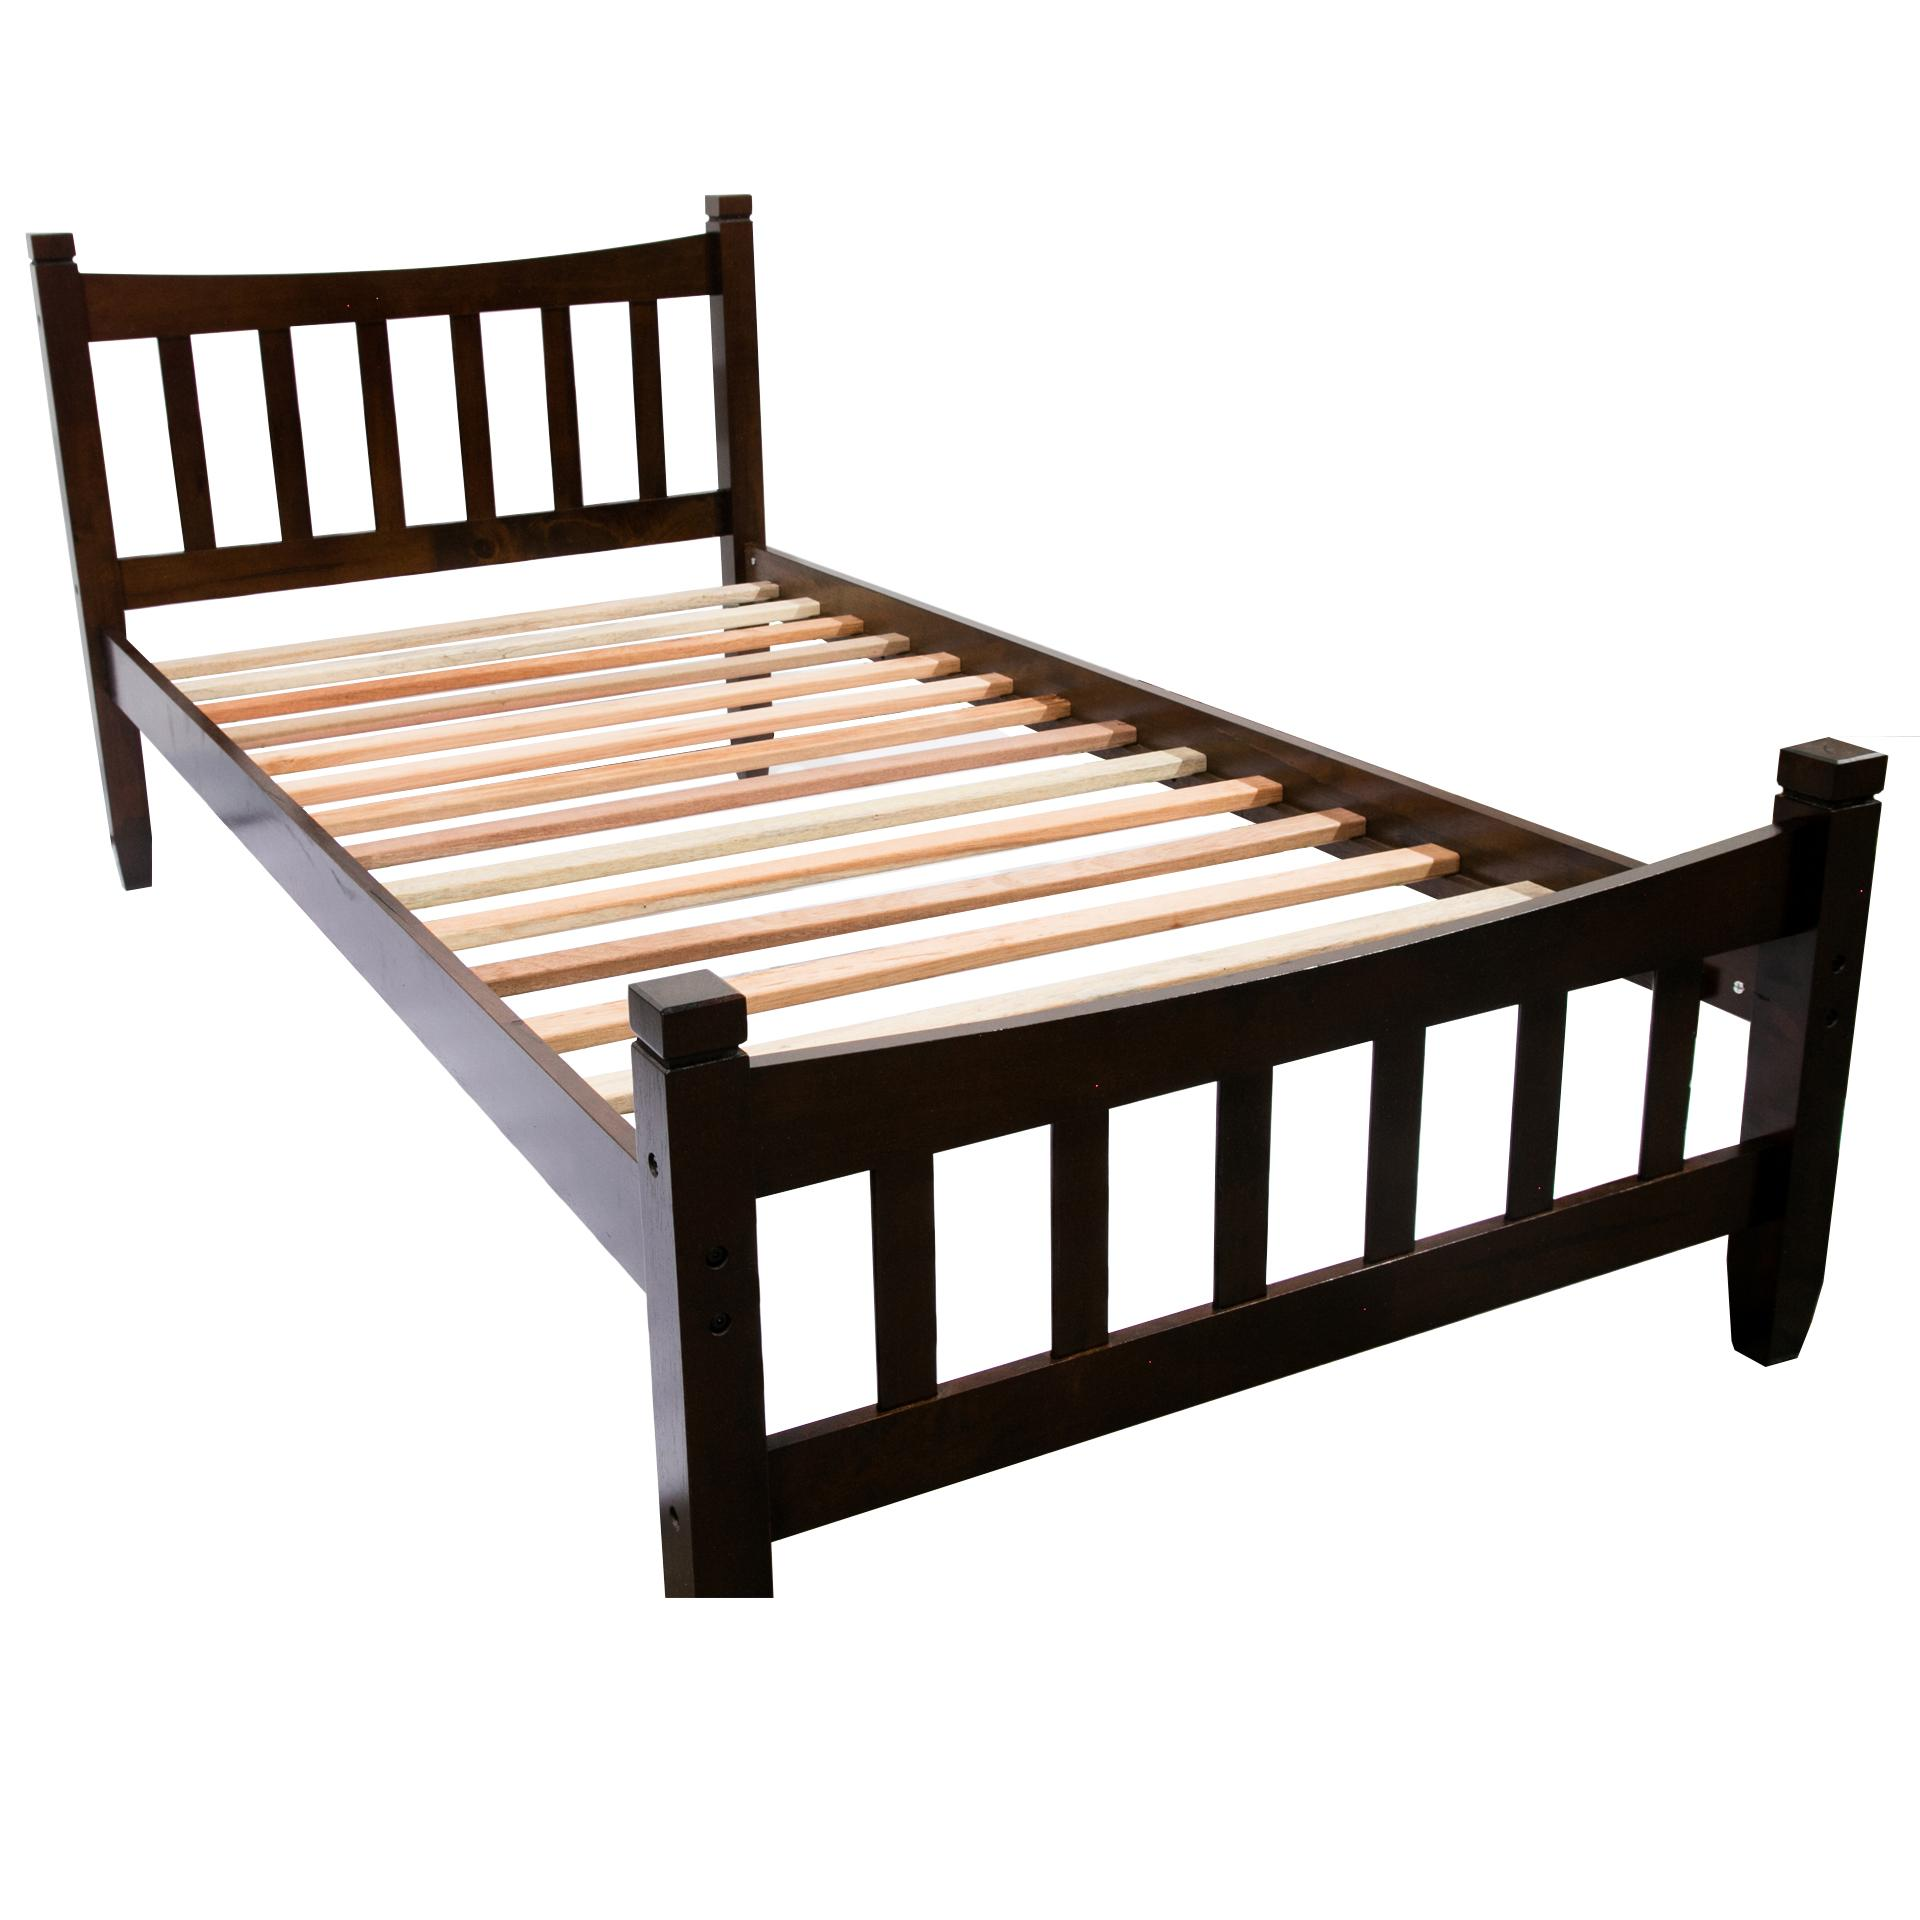 Bed for sale - Beds prices, brands & review in Philippines | Lazada ...